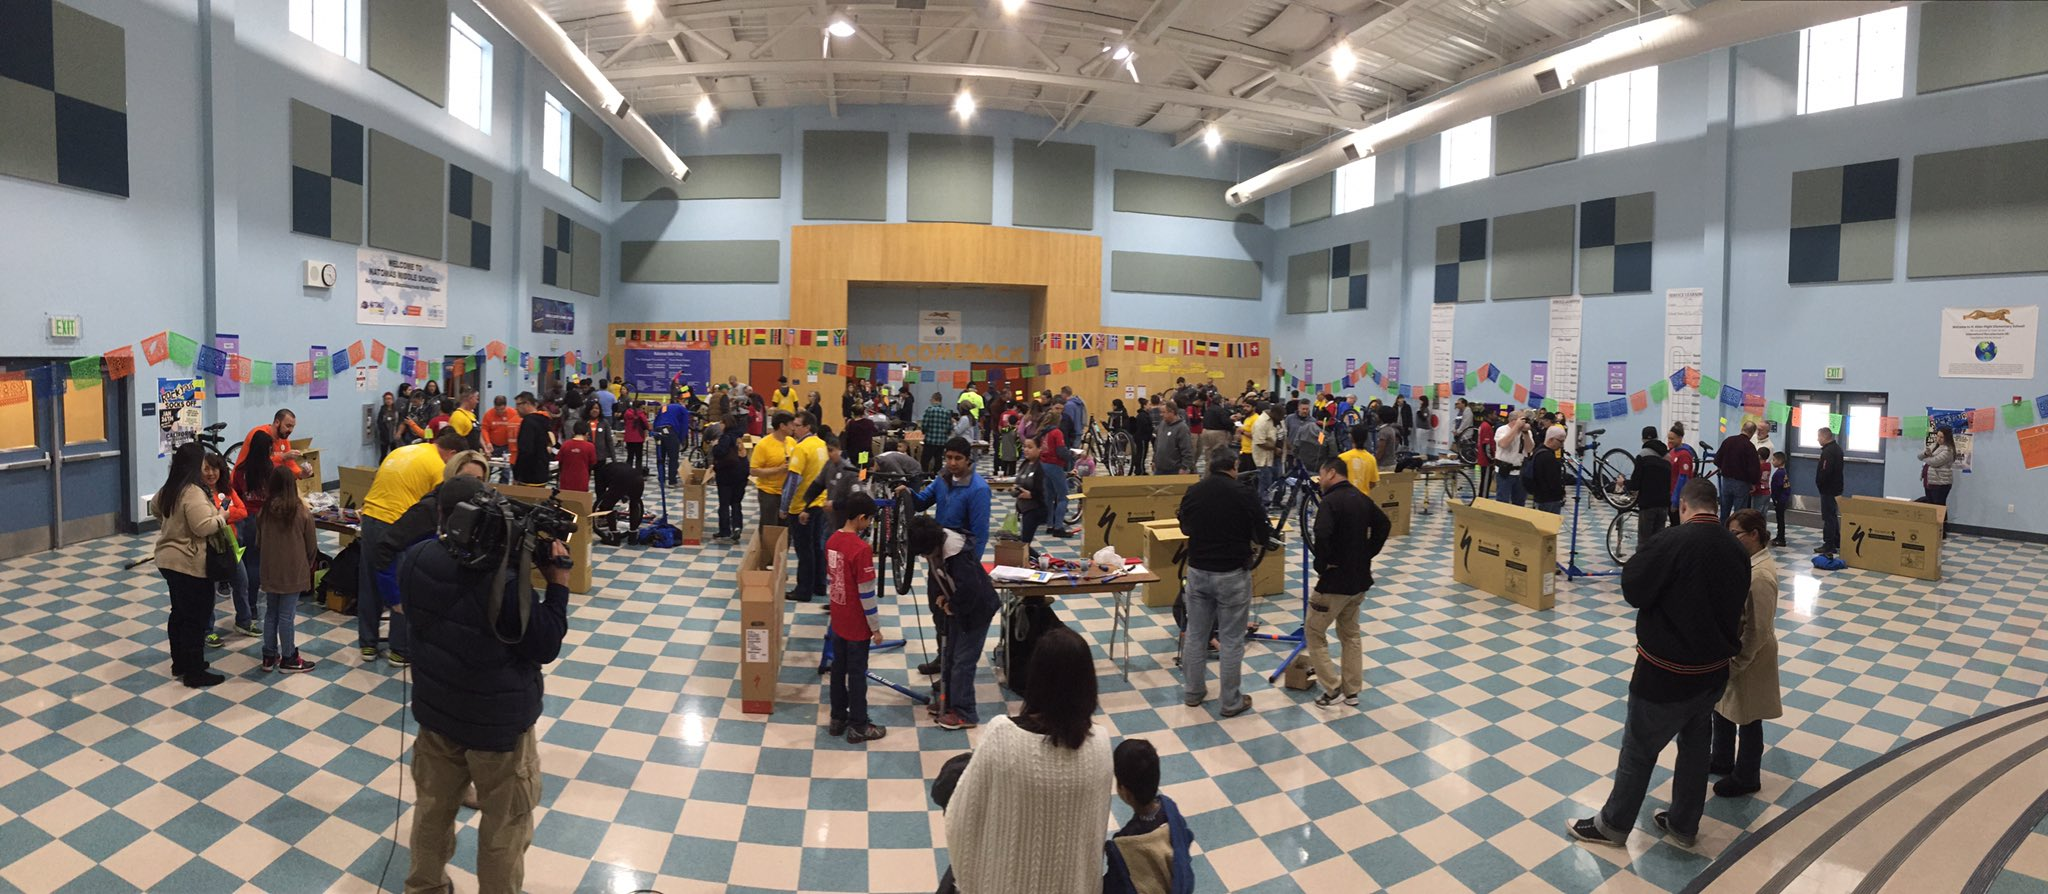 Great event on #MLKDAY.  50 Bikes for 50 Kids in #Natomas. #50Bikes2017. @NorthNatomasTMA https://t.co/bHY5YgB1gH